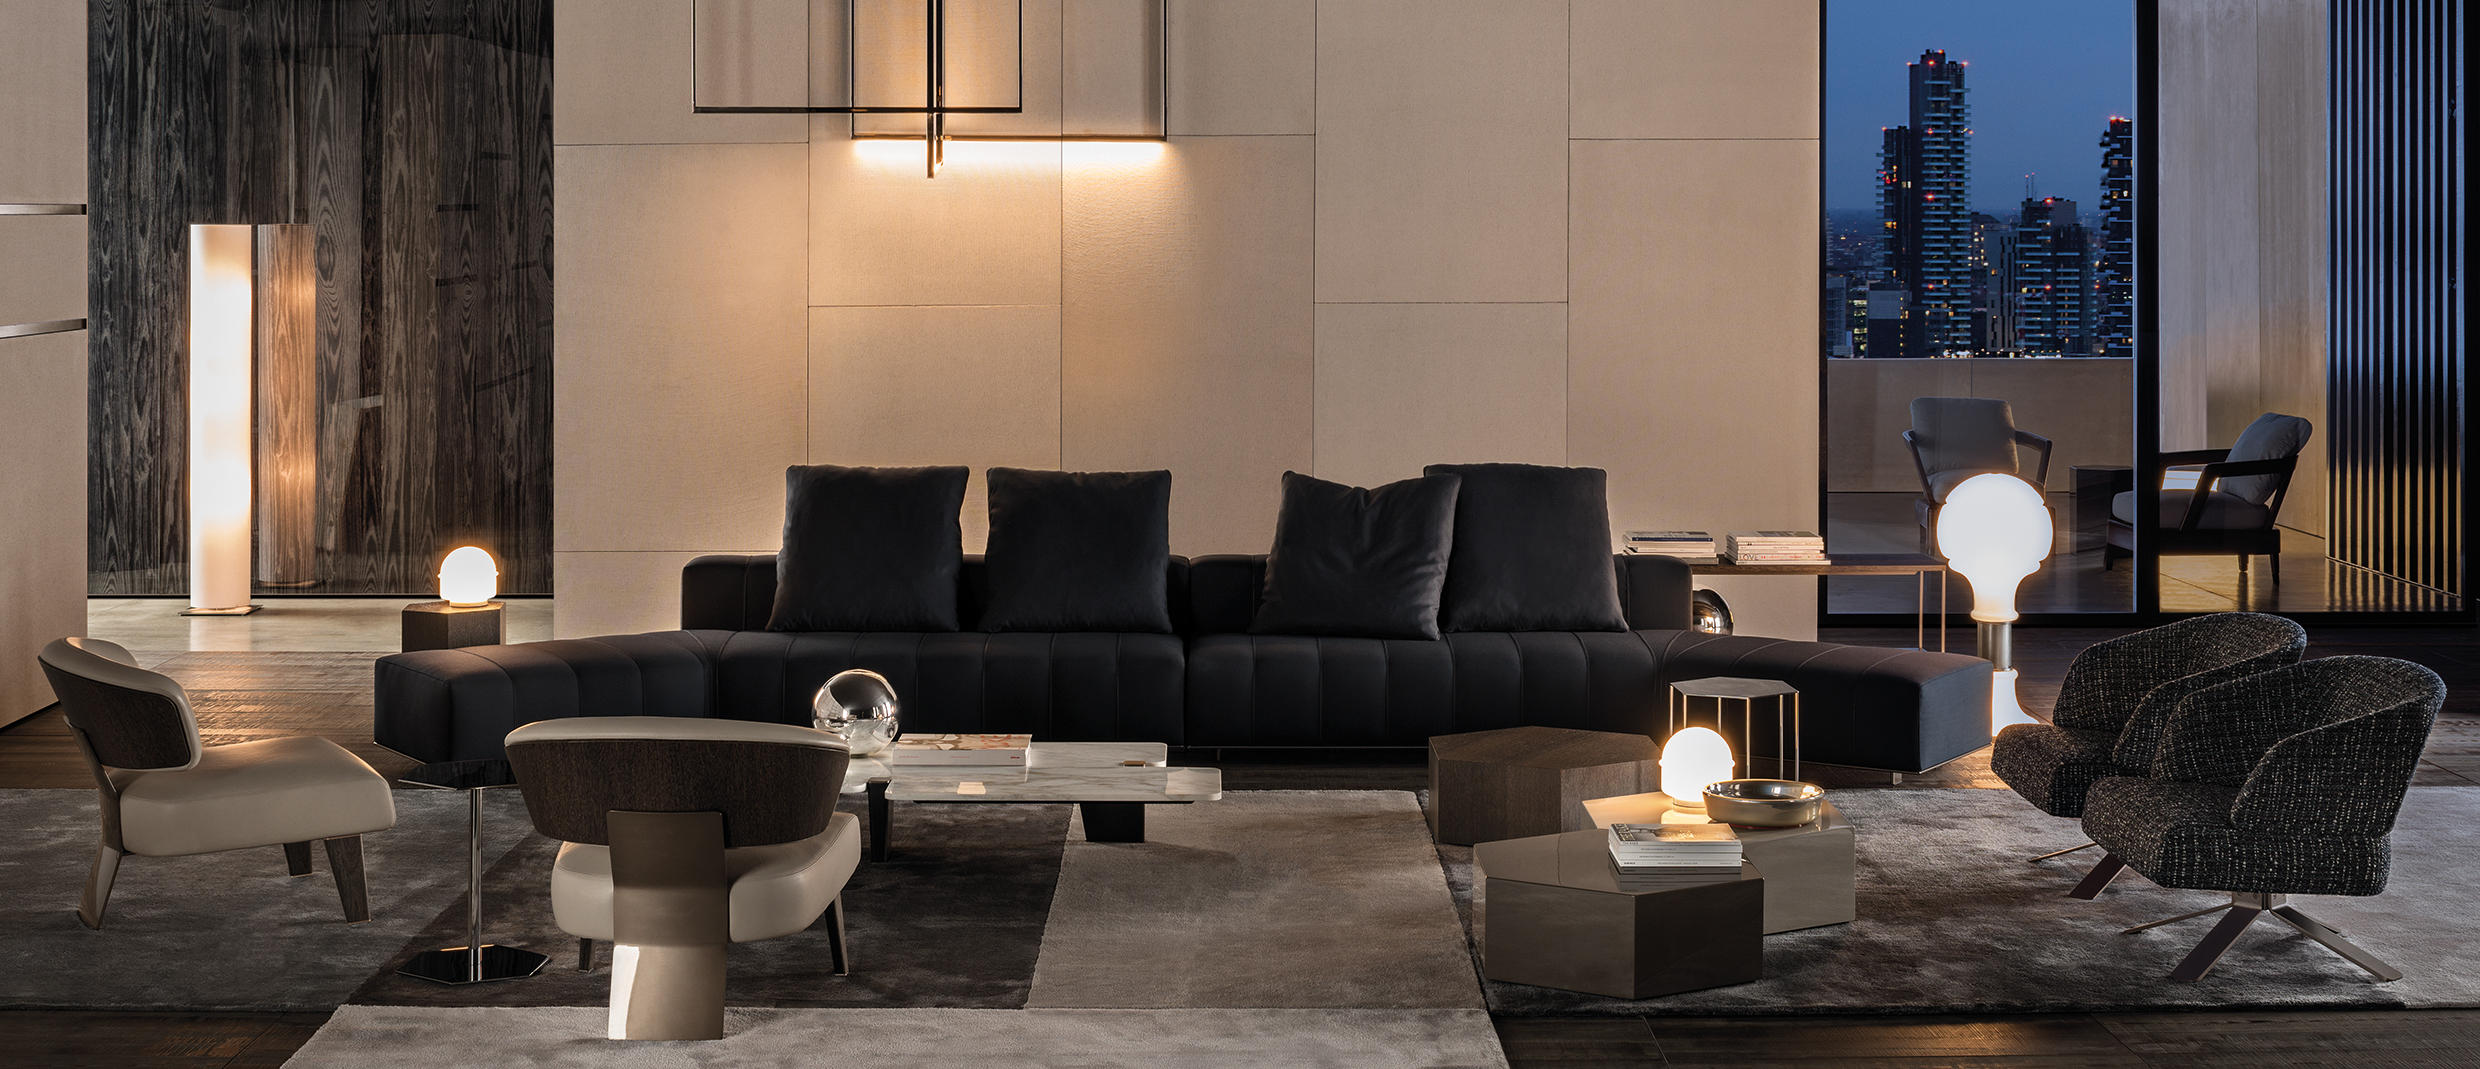 Superbe ... Freeman Lounge Sofa By Minotti ...